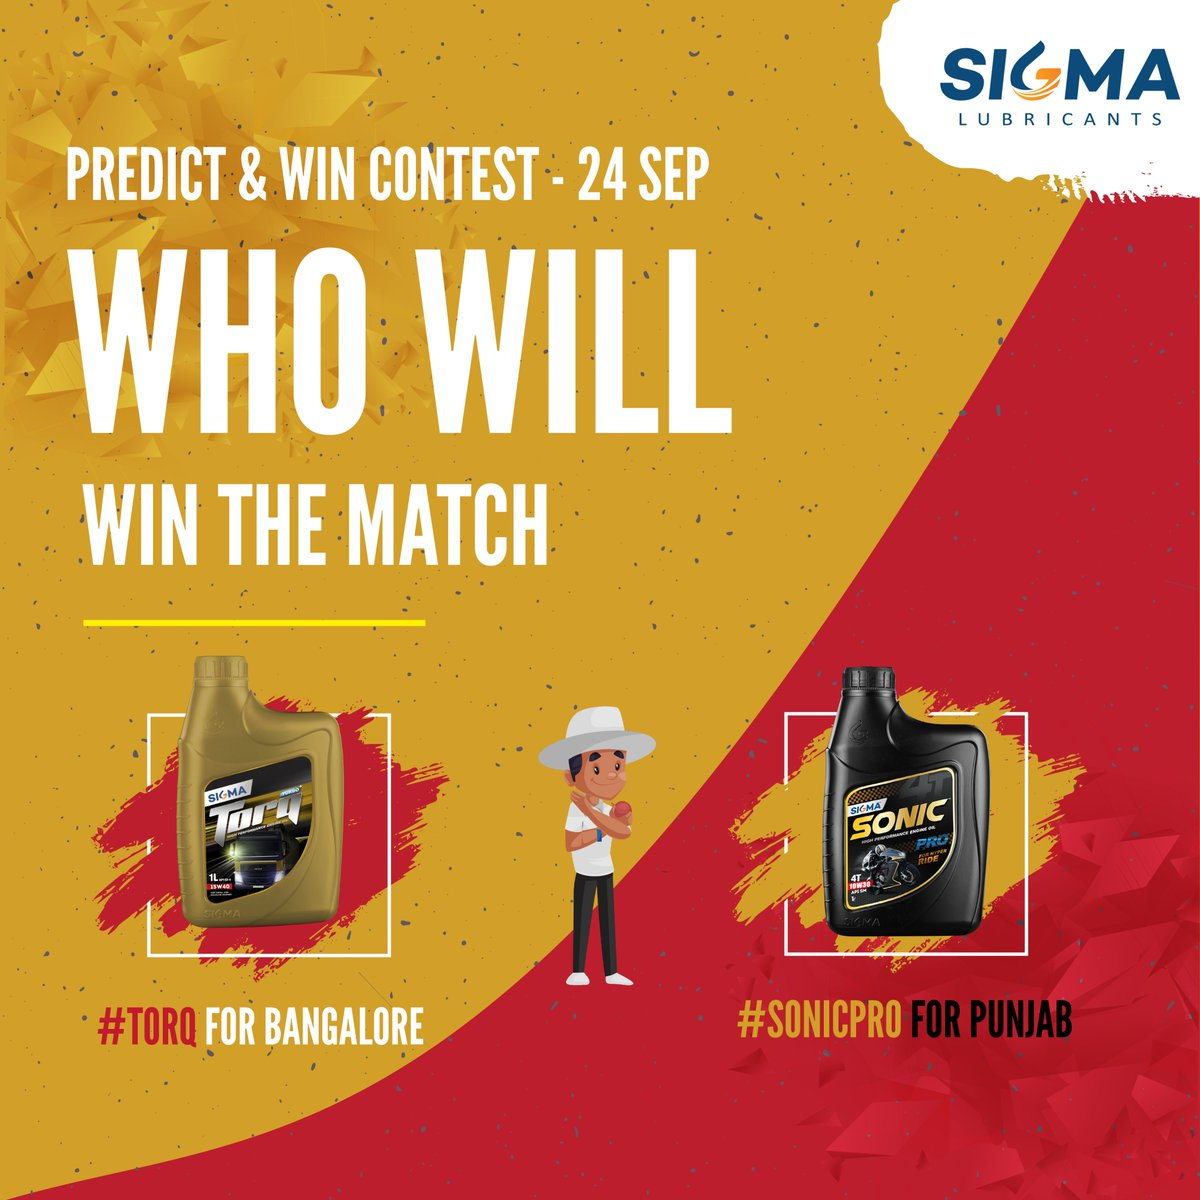 #sigmalubricants Predict and Win #Contest  Who will win the match?  #TORQ for Bangalore or #SONICPRO for Punjab  Hashtags #sigmacontest & ans  T&C: https://t.co/OFPV9LCxiP  #WeAreChallengers #RCB #PredictandWin #KXIP  #RCBvKXIP #KXIPvRCB #playbold #ContestAlert #Bangalore https://t.co/1IdiQEScqv